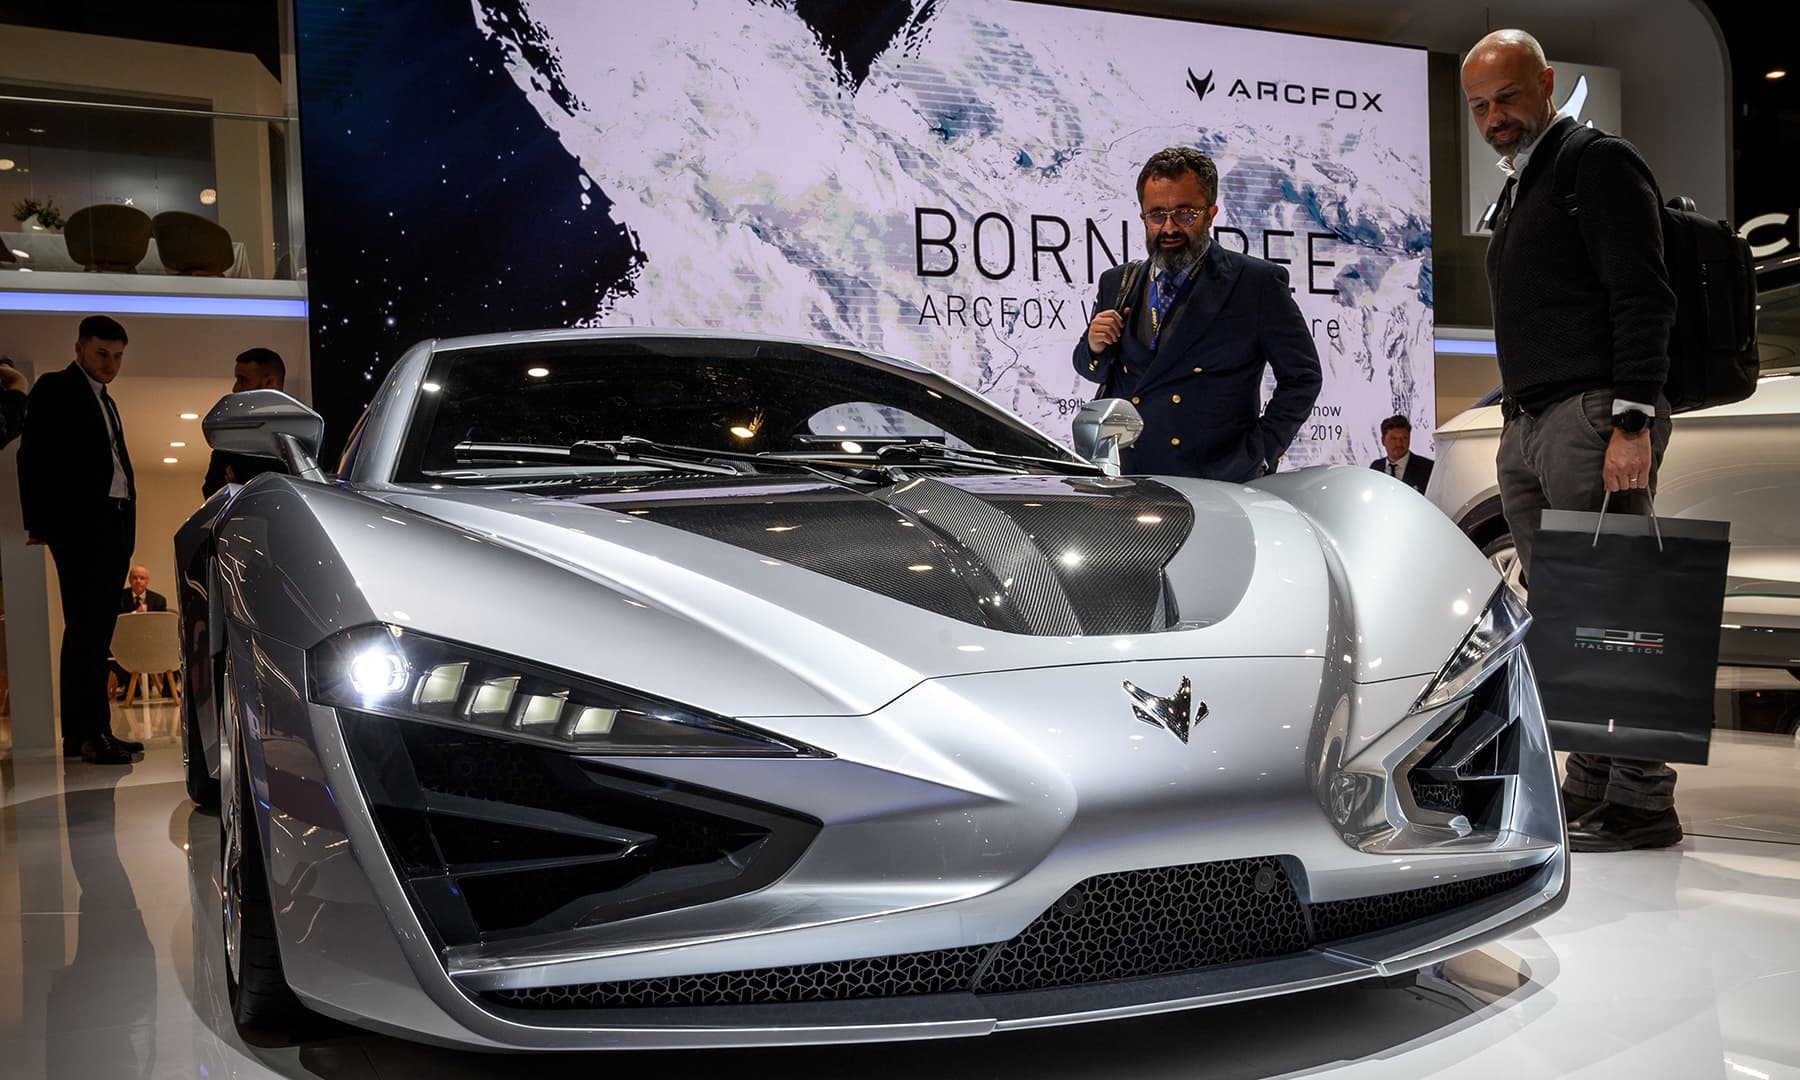 Visitors look at the Arcfox-GT model car at the booth of the Chinese carmaker on March 5 ahead of the Geneva International Motor Show. — AFP